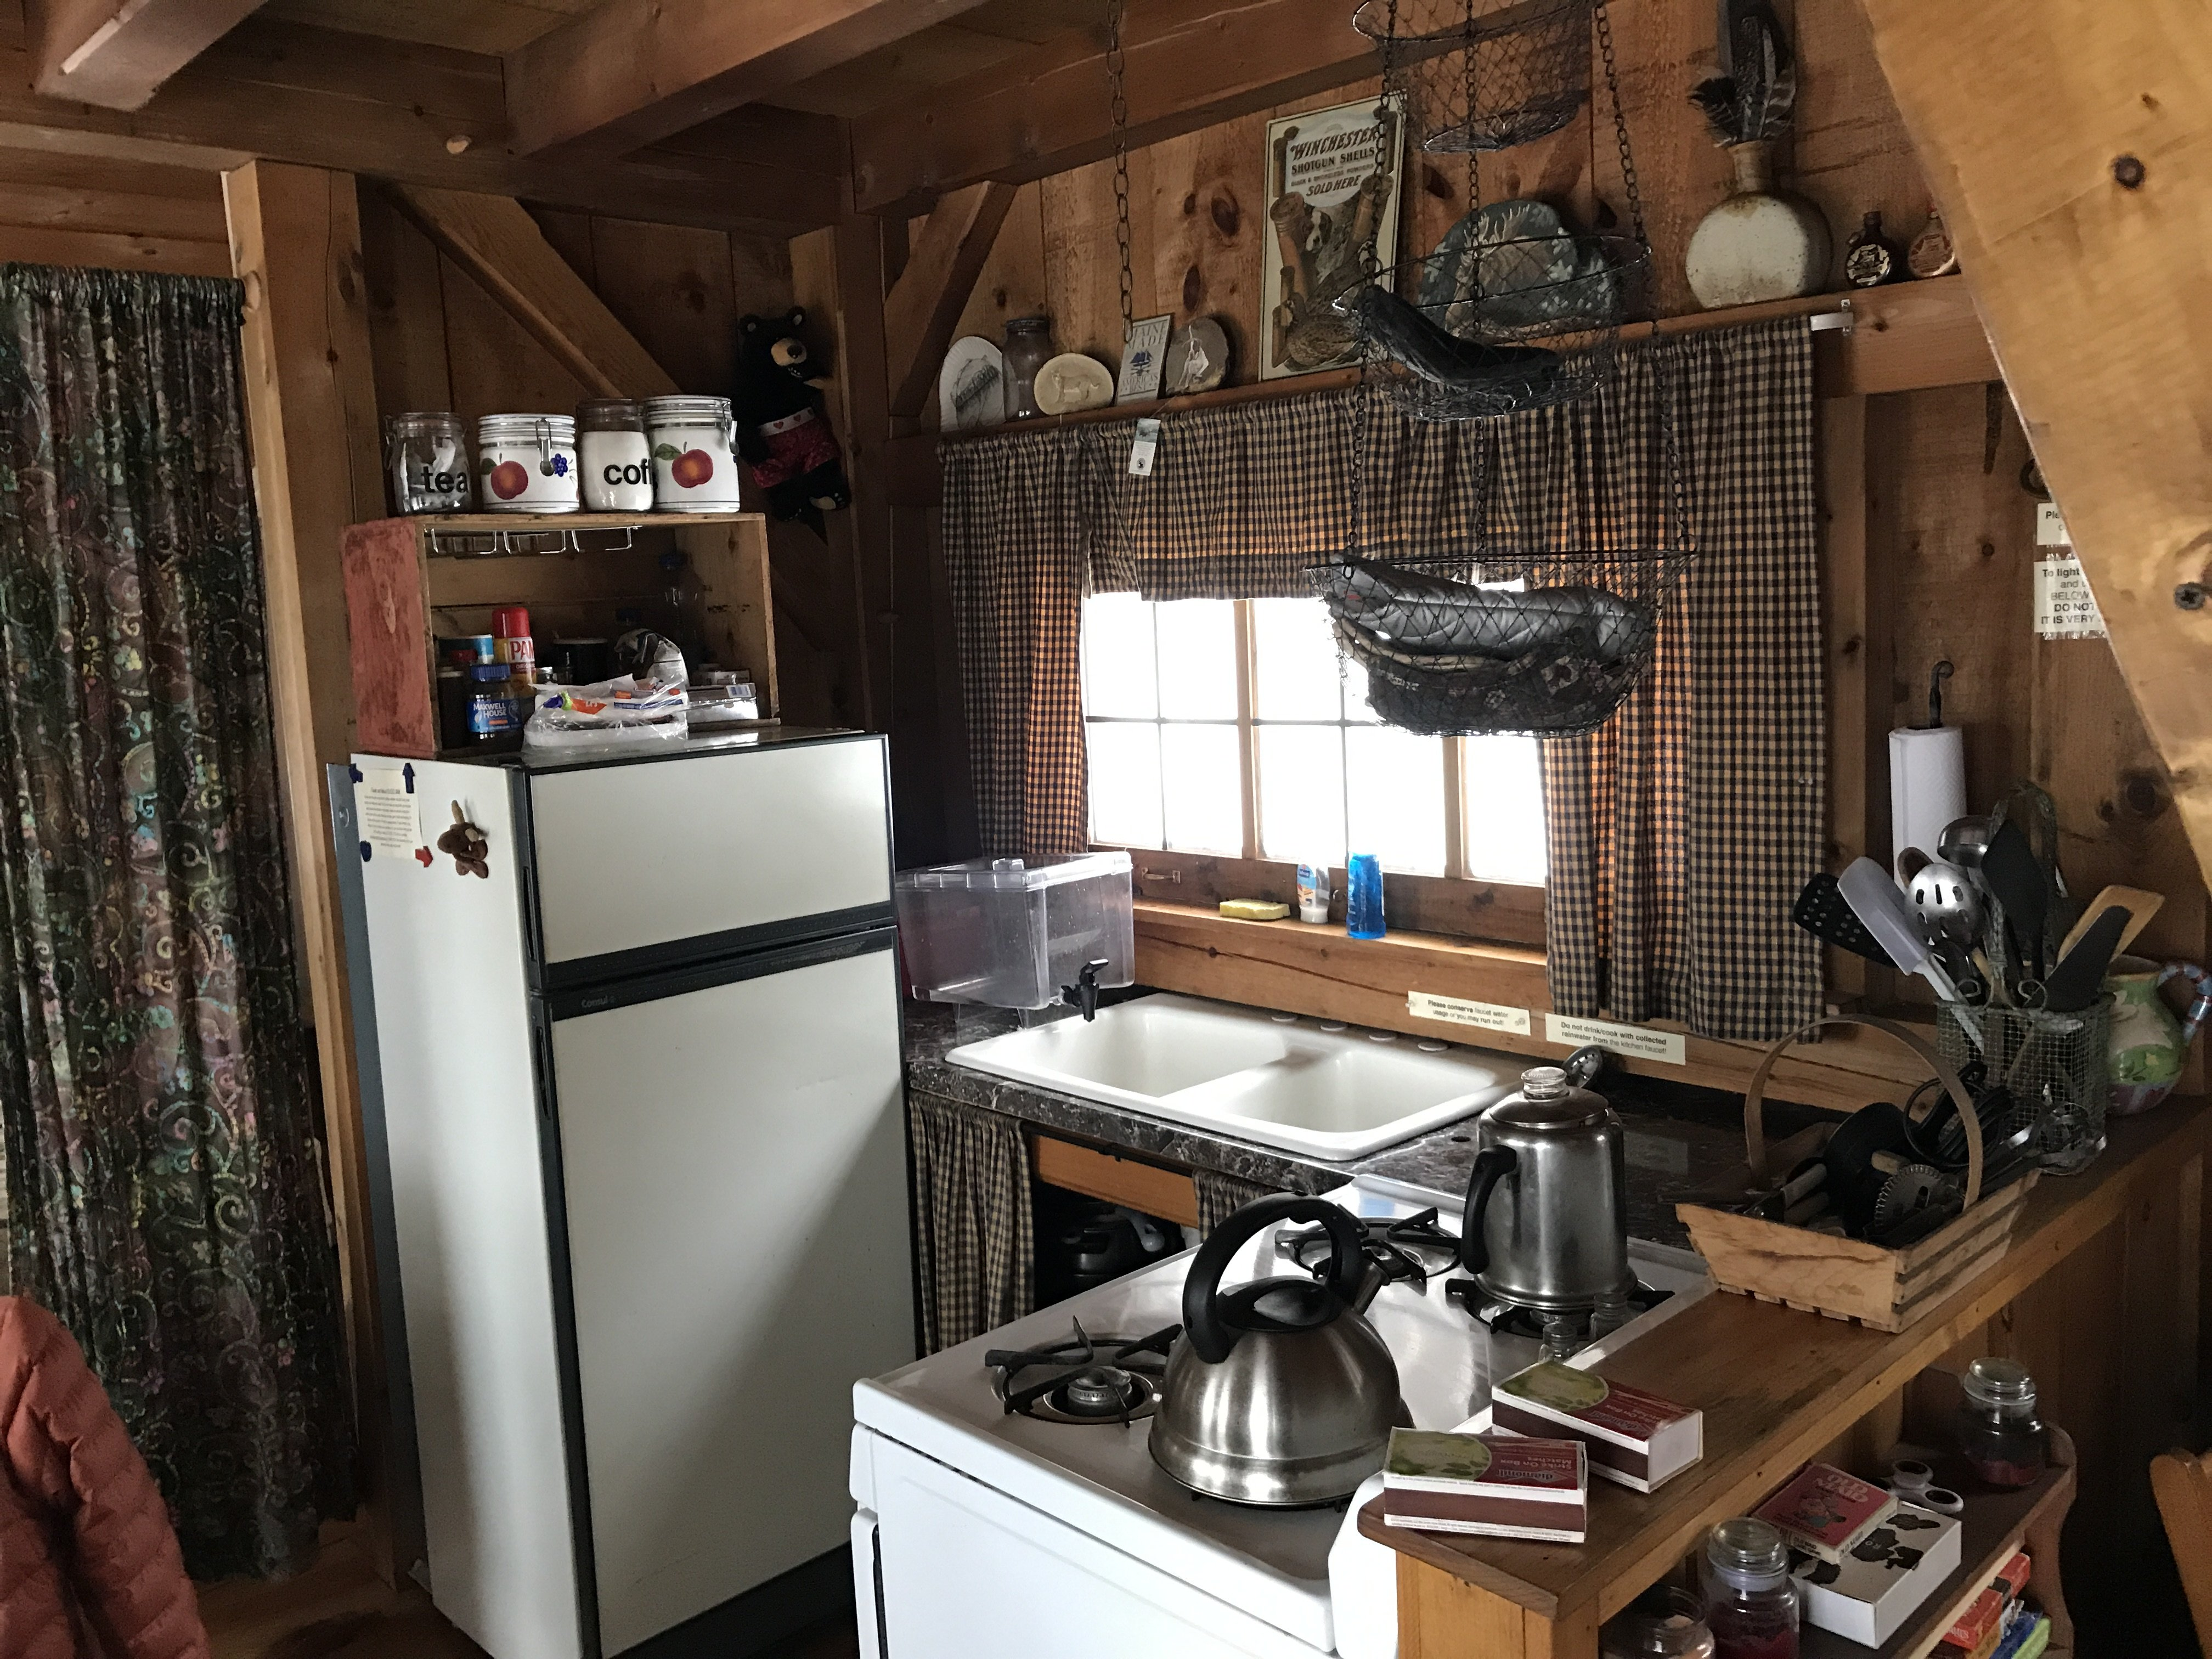 The kitchen at an off-the-grid cabin in Andover, Maine.